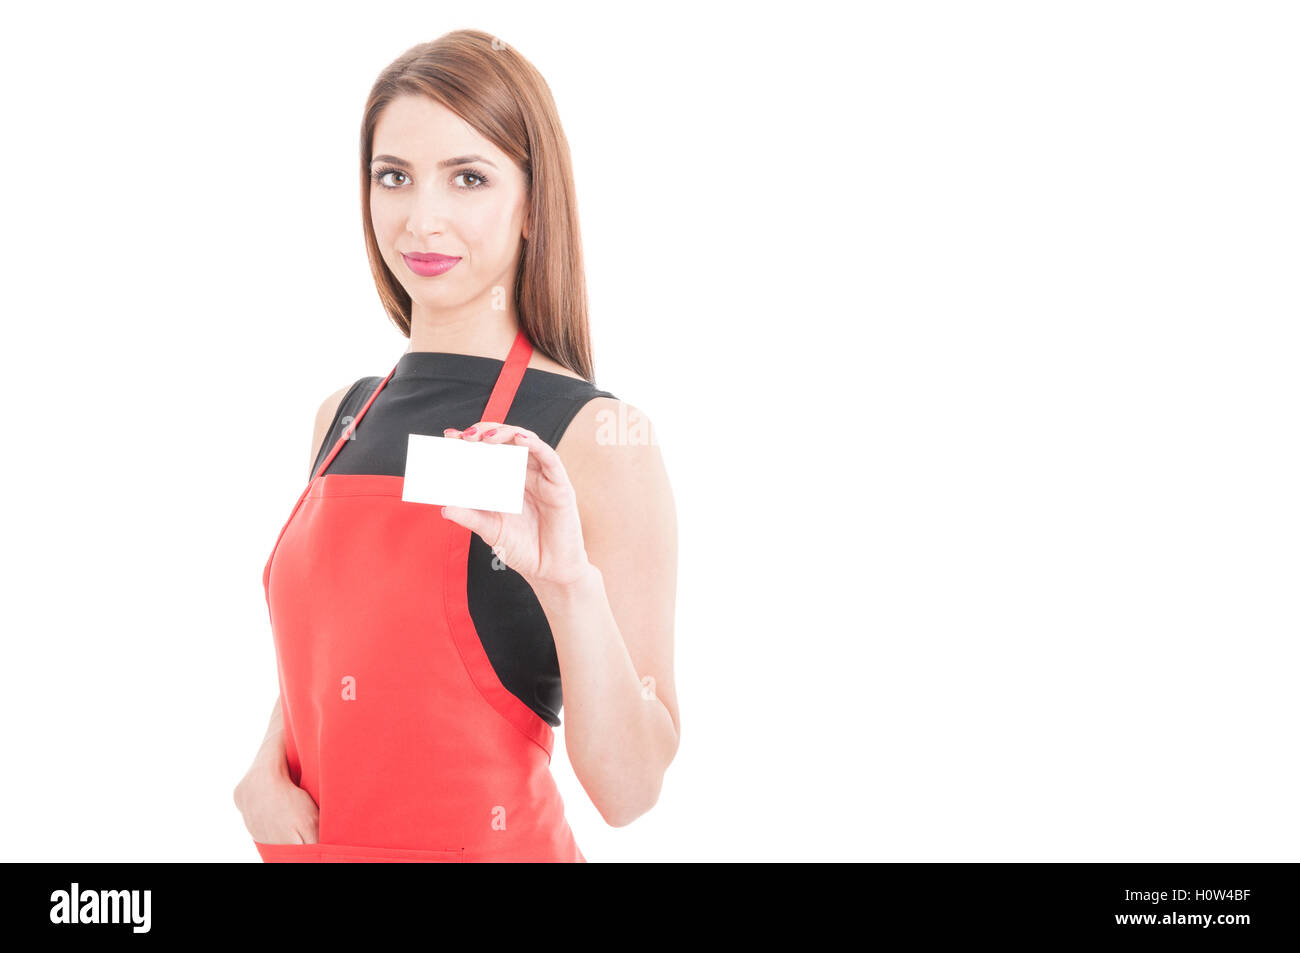 Pretty employee with red apron showing empty business card on white background with text area - Stock Image